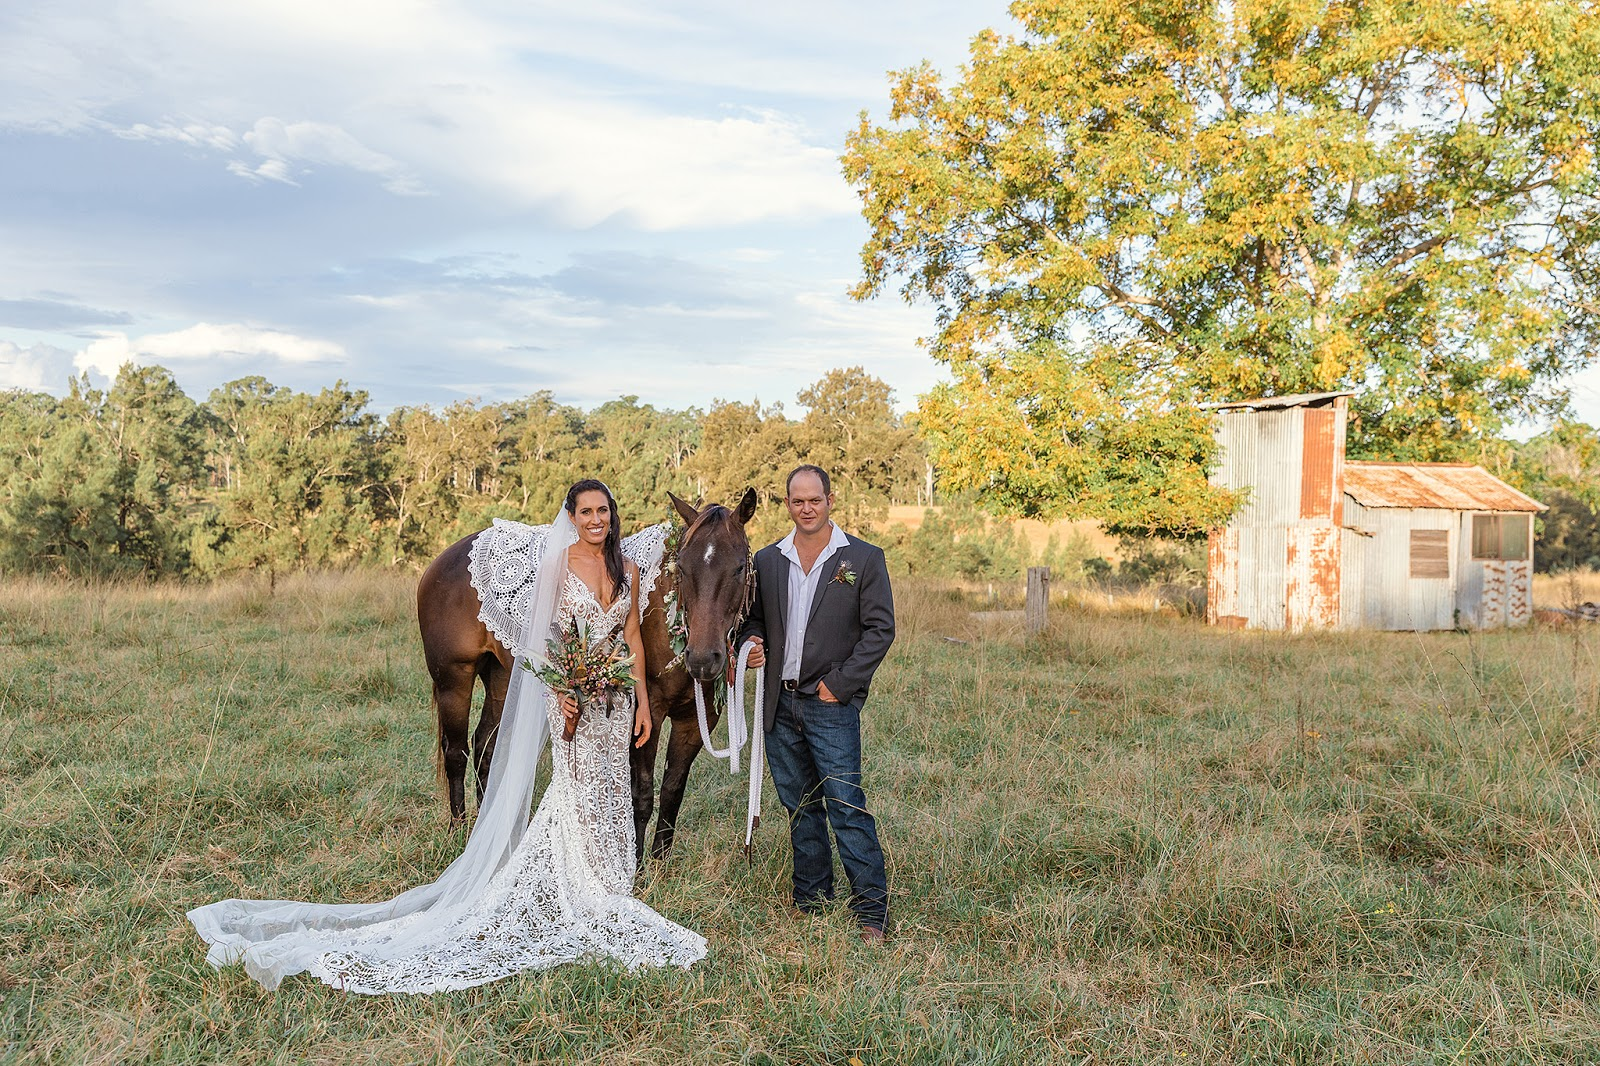 LOVE: CLANCY & LARRY | RUSTIC COUNTRY BOHO WEDDING NYMBOIDA RIVER